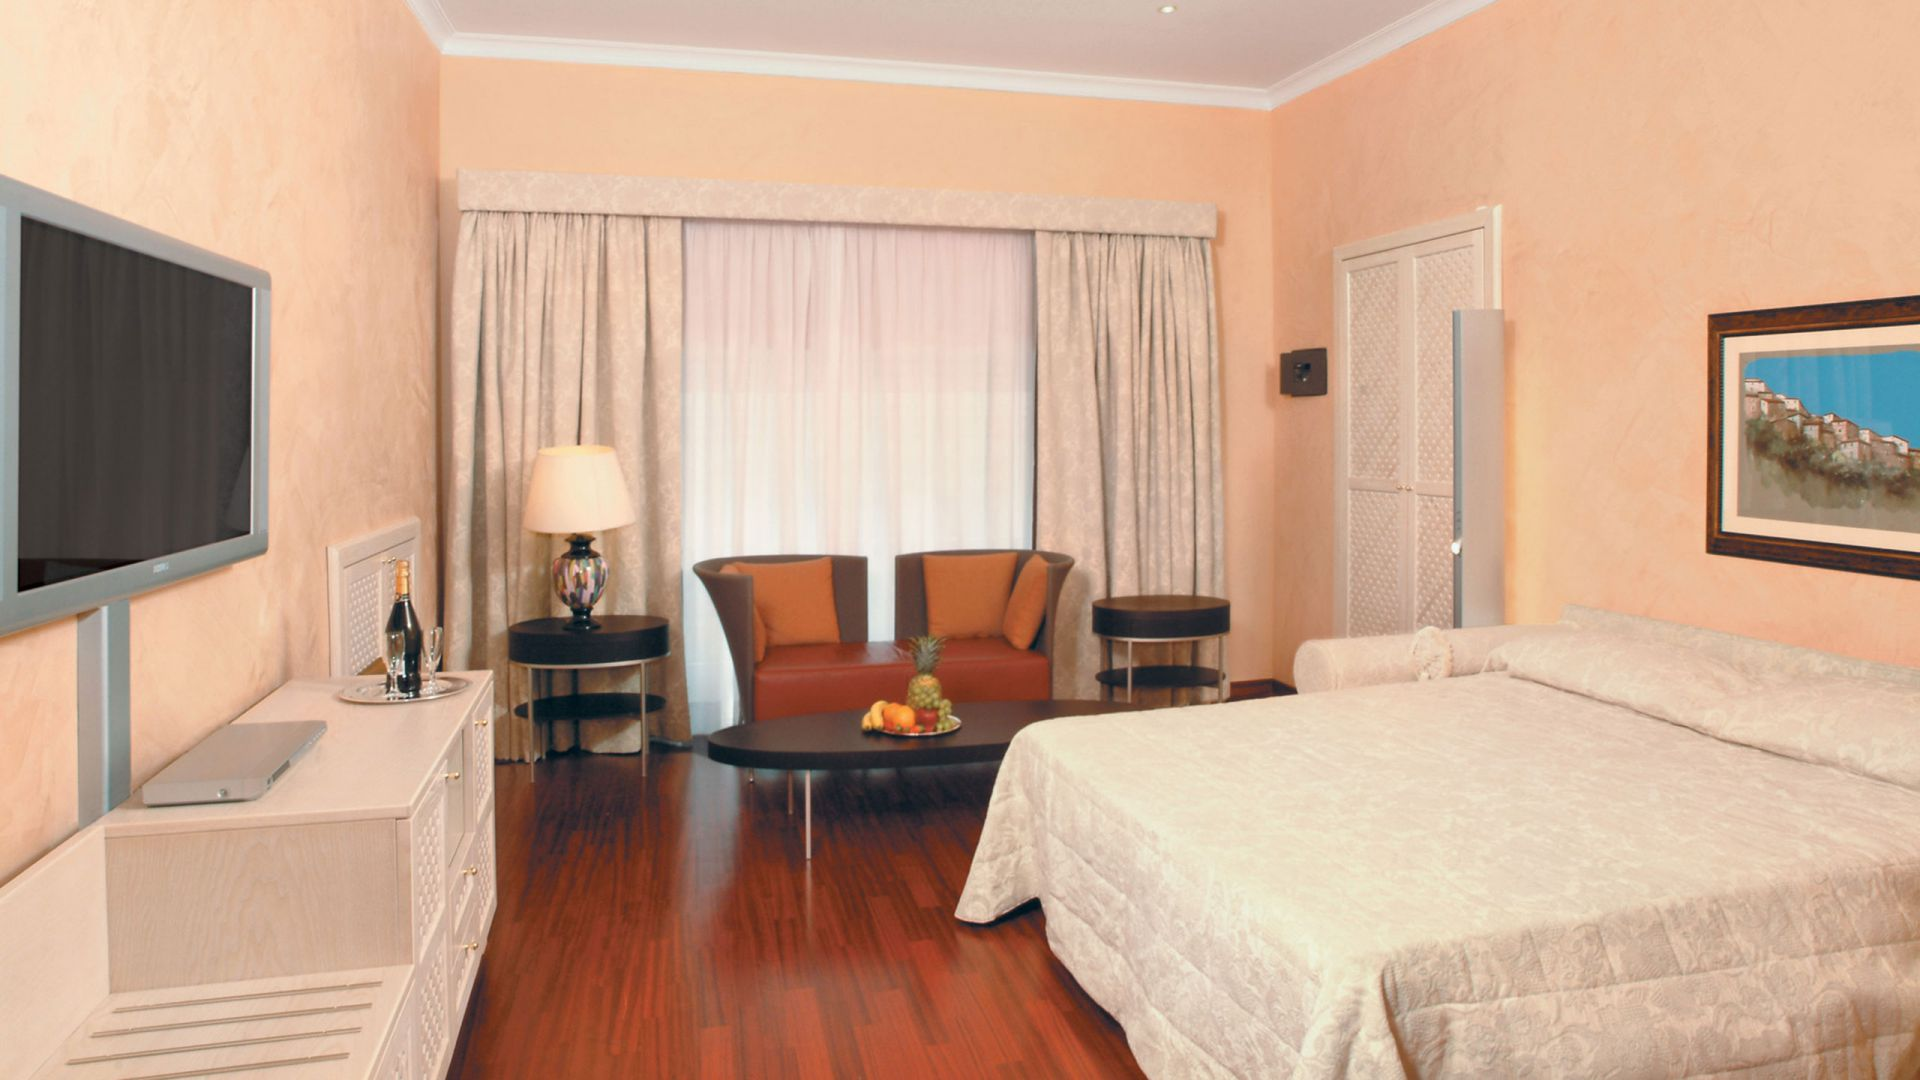 colosseo-suites-rome-rooms-03